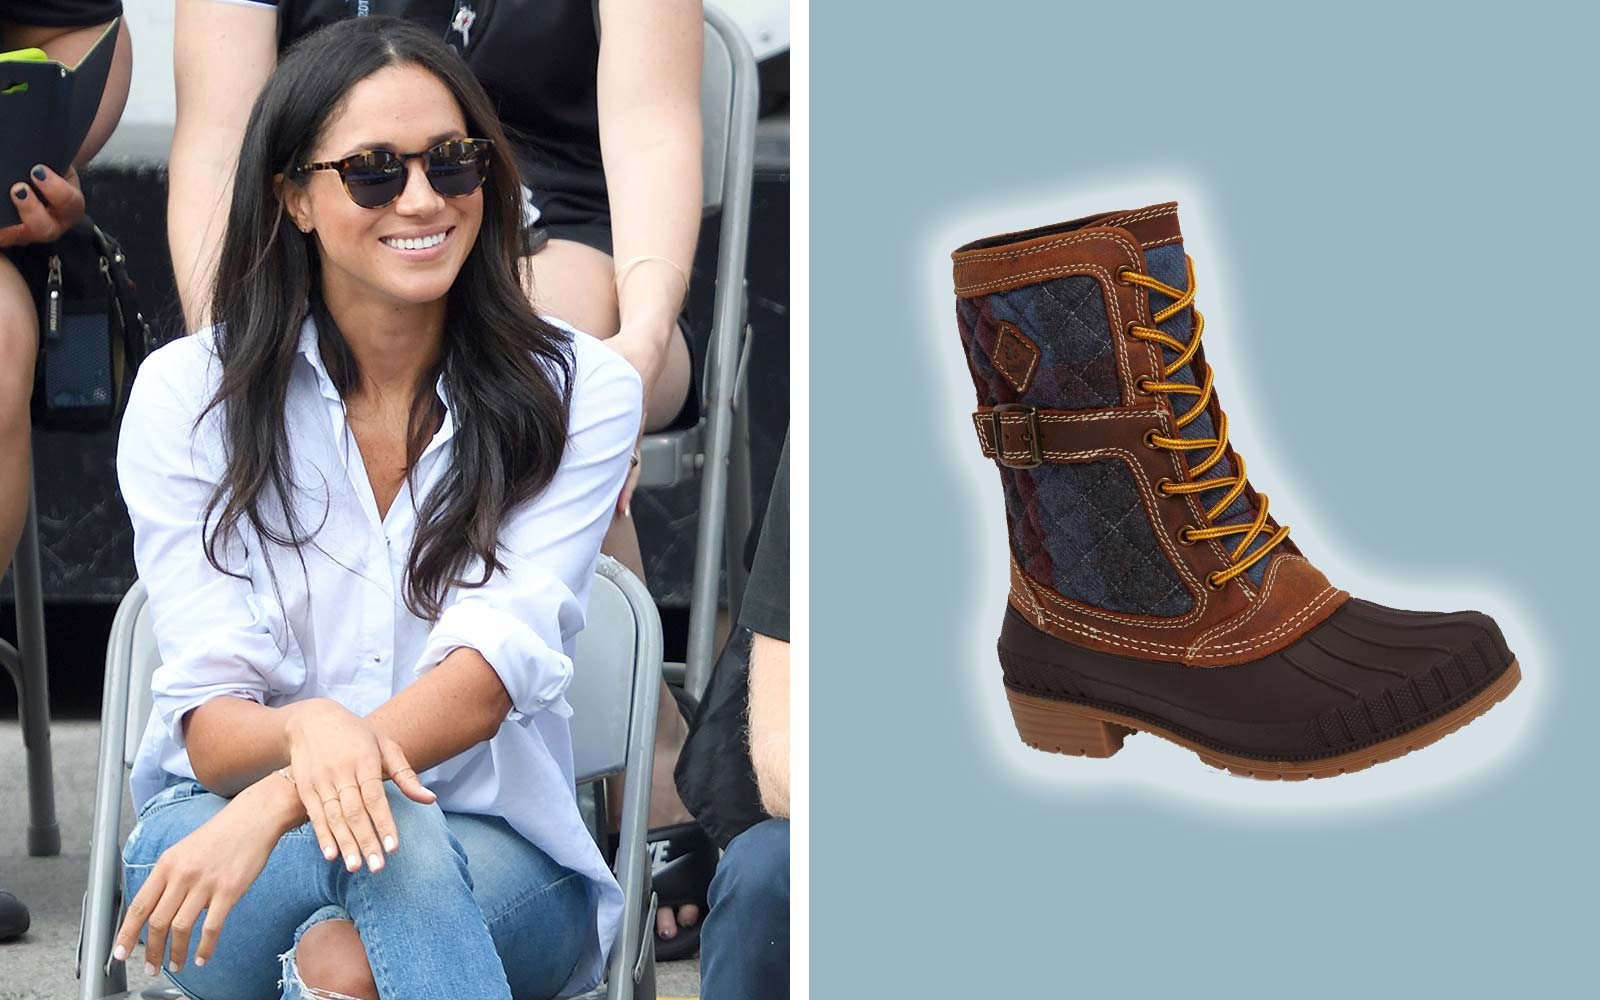 Meghan Markle Wears These $120 Boots Year After Year